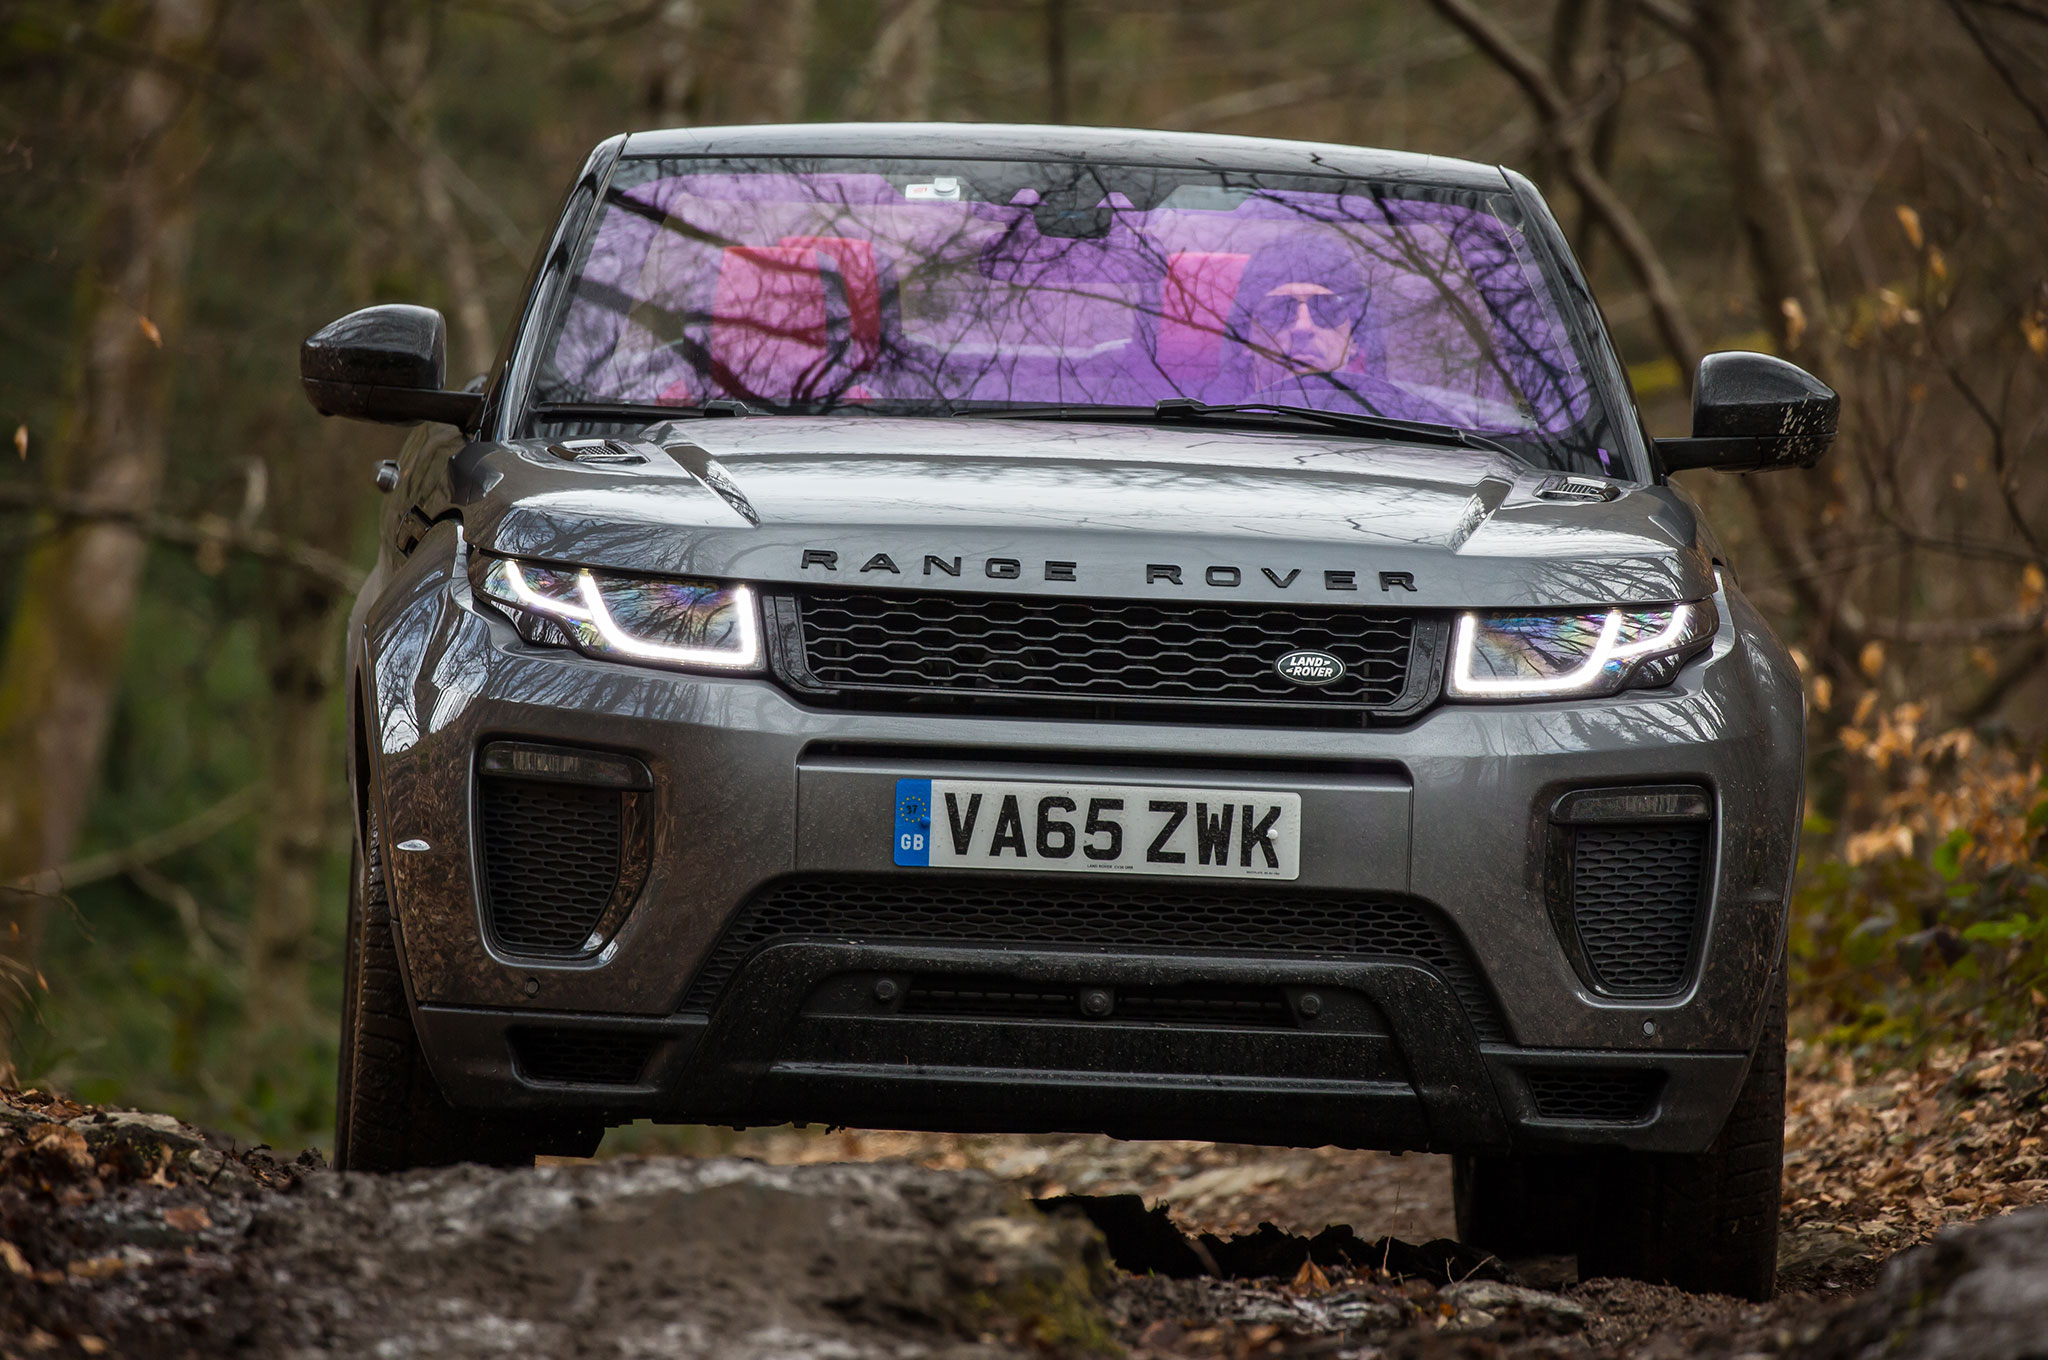 2017 Range Rover Evoque Convertible Review Track Rod Show More